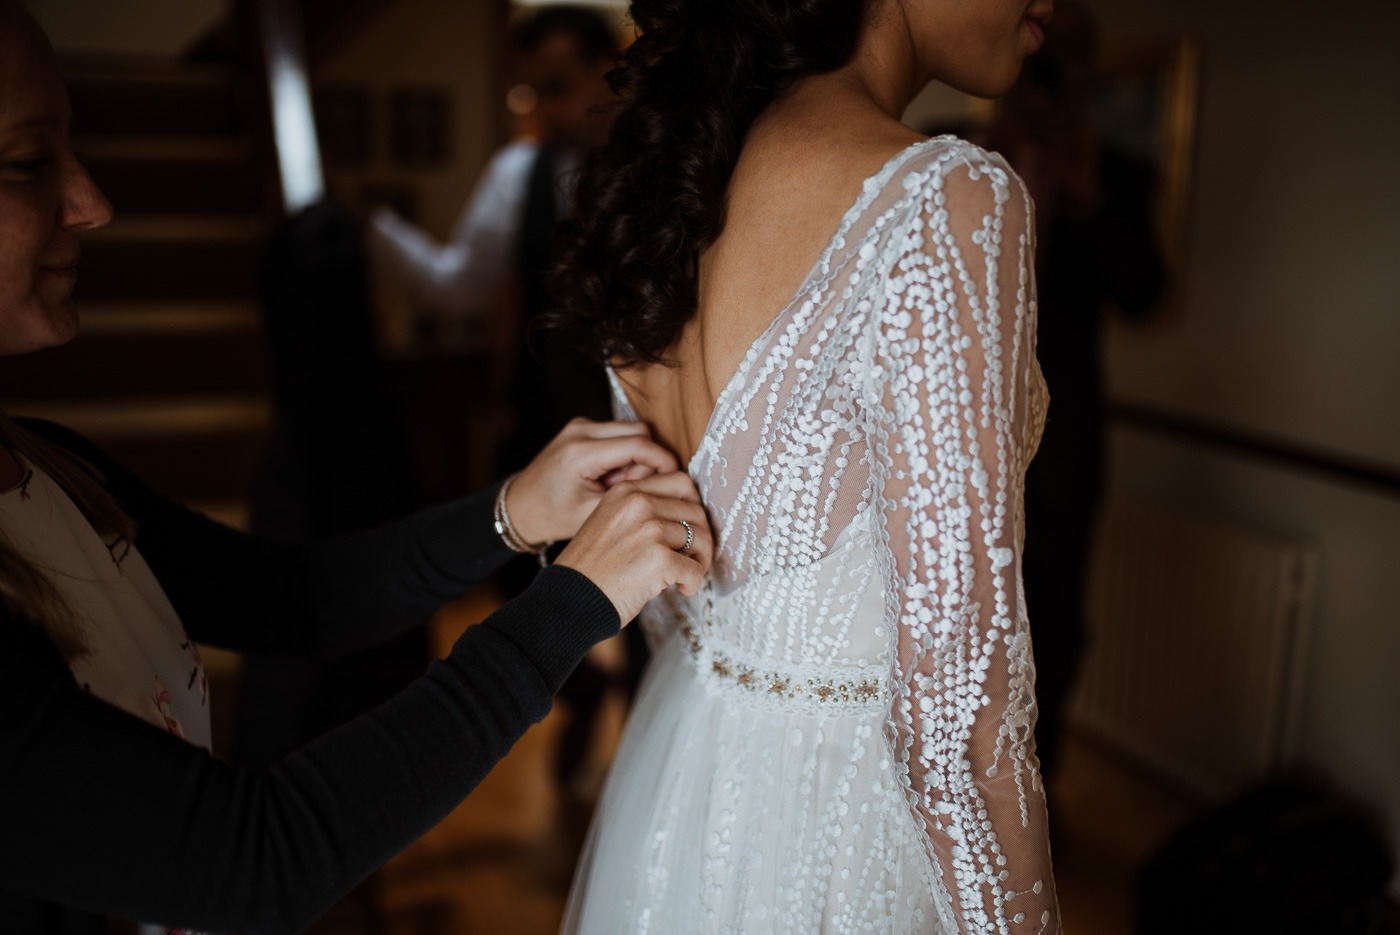 A person wearing a wedding dress